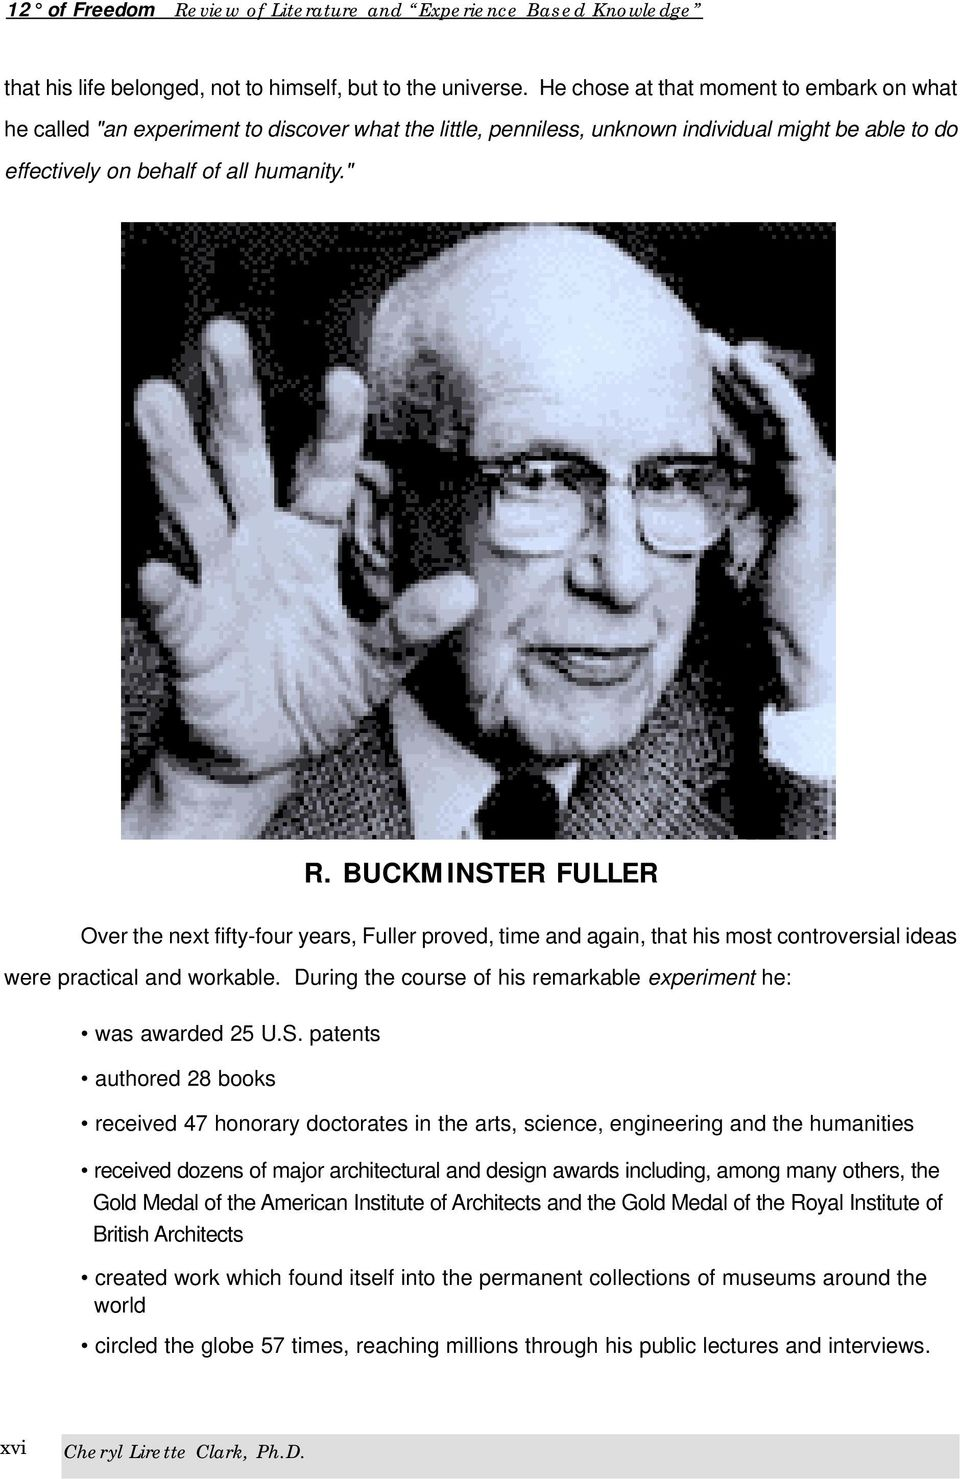 BUCKMINSTER FULLER Over the next fifty-four years, Fuller proved, time and again, that his most controversial ideas were practical and workable.